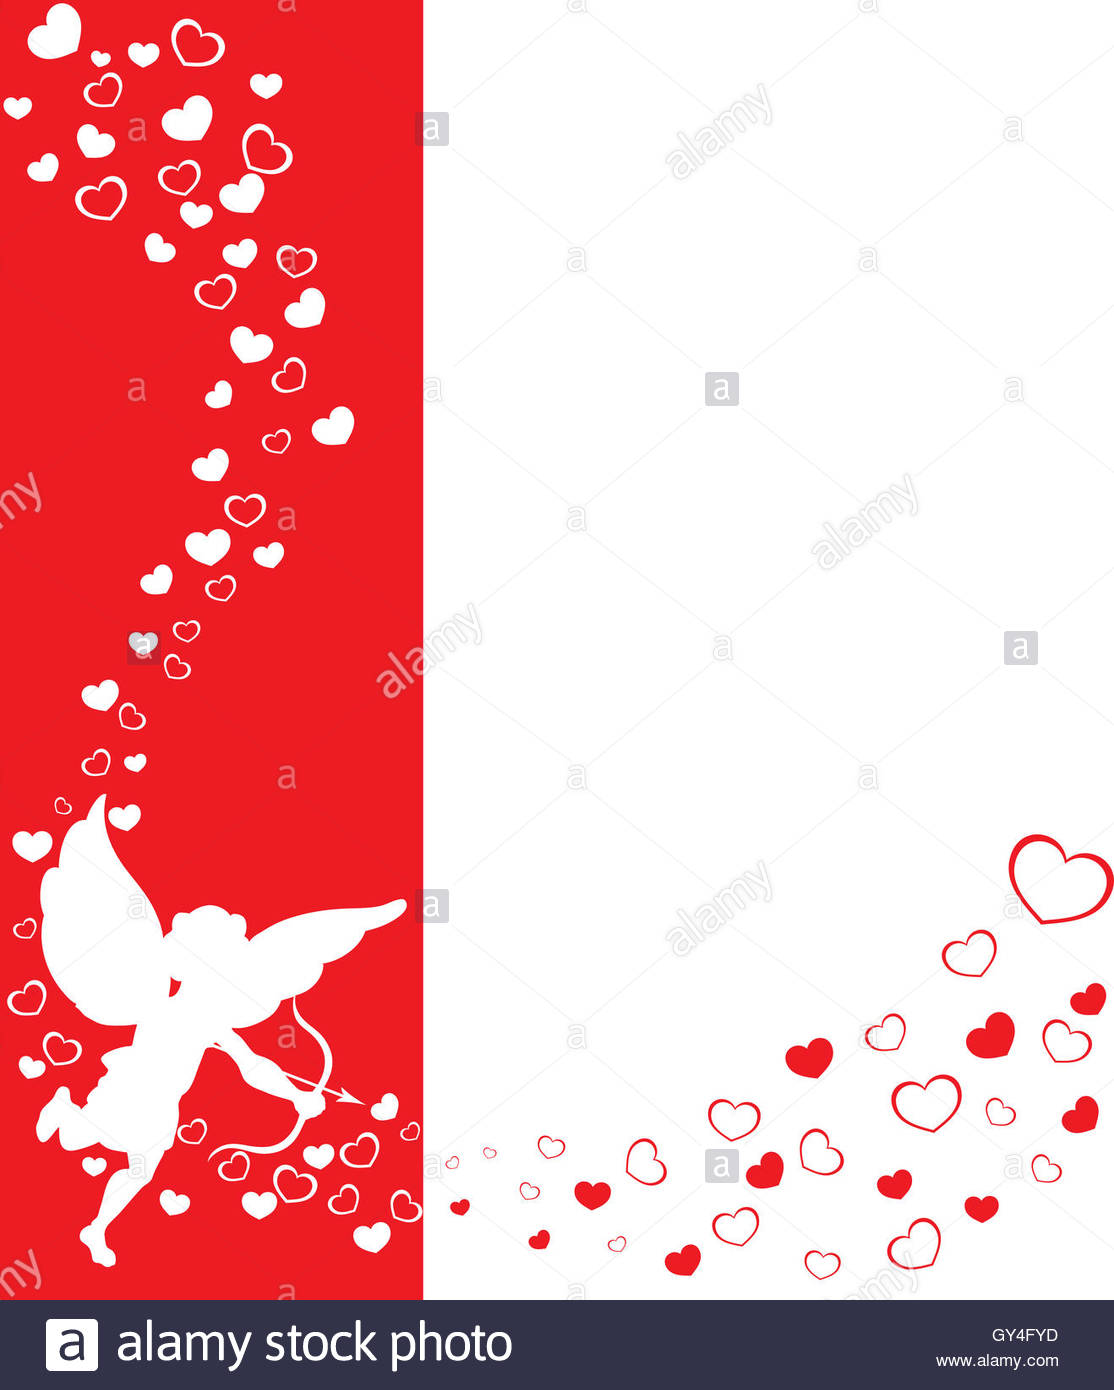 love angel eros on a red background with hearts Stock Photo 1114x1390